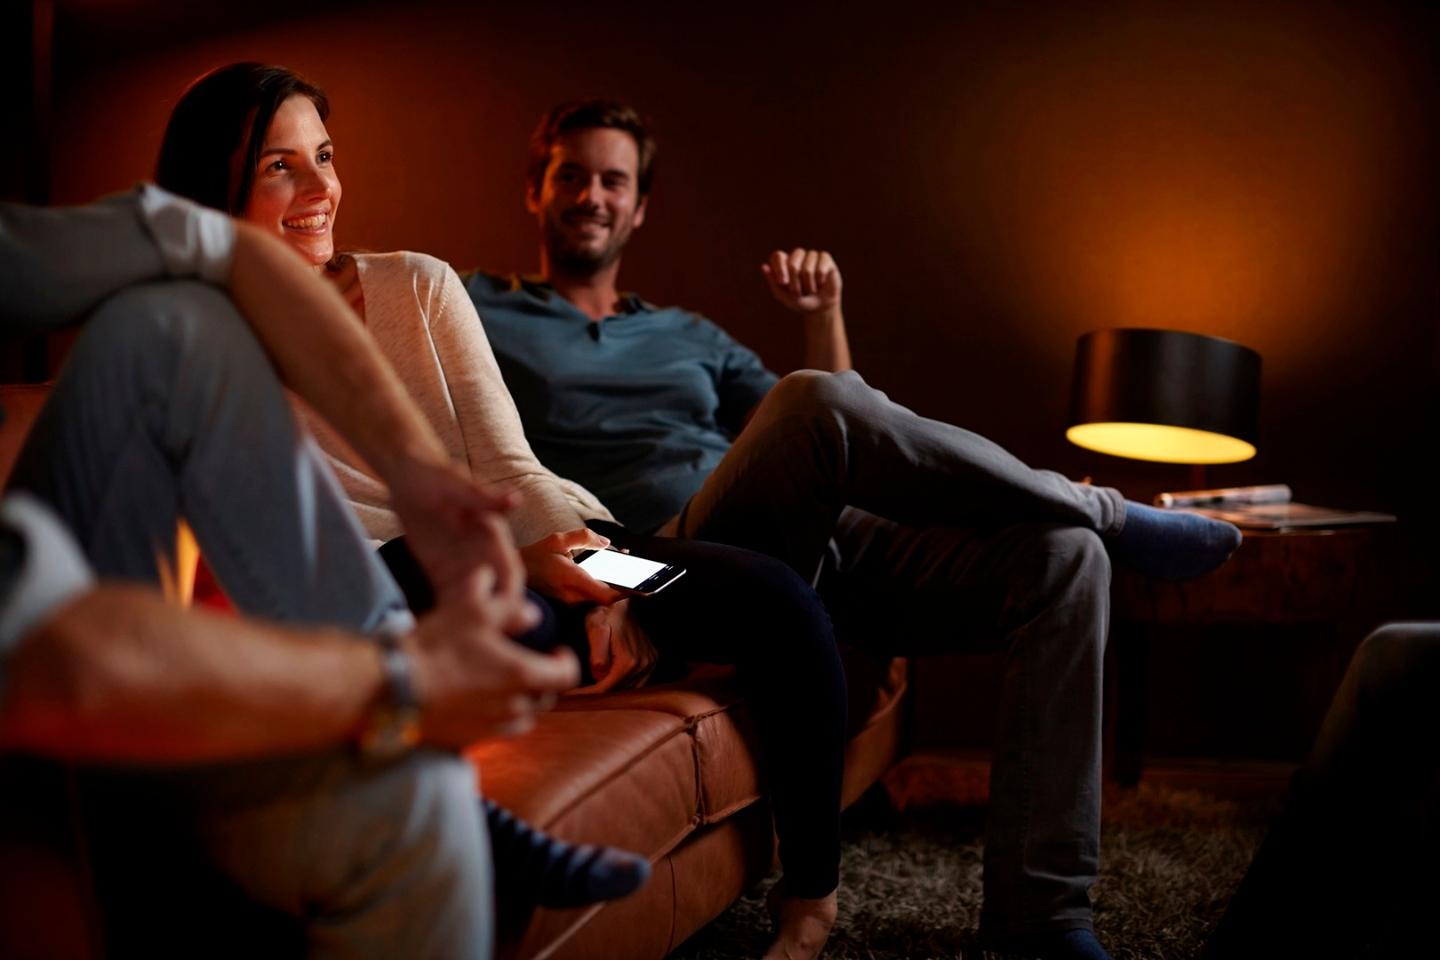 The Philips Hue Bridge 2.0 allows users to load pre-saved lighting profiles for multiple lights and to group compatible devices together